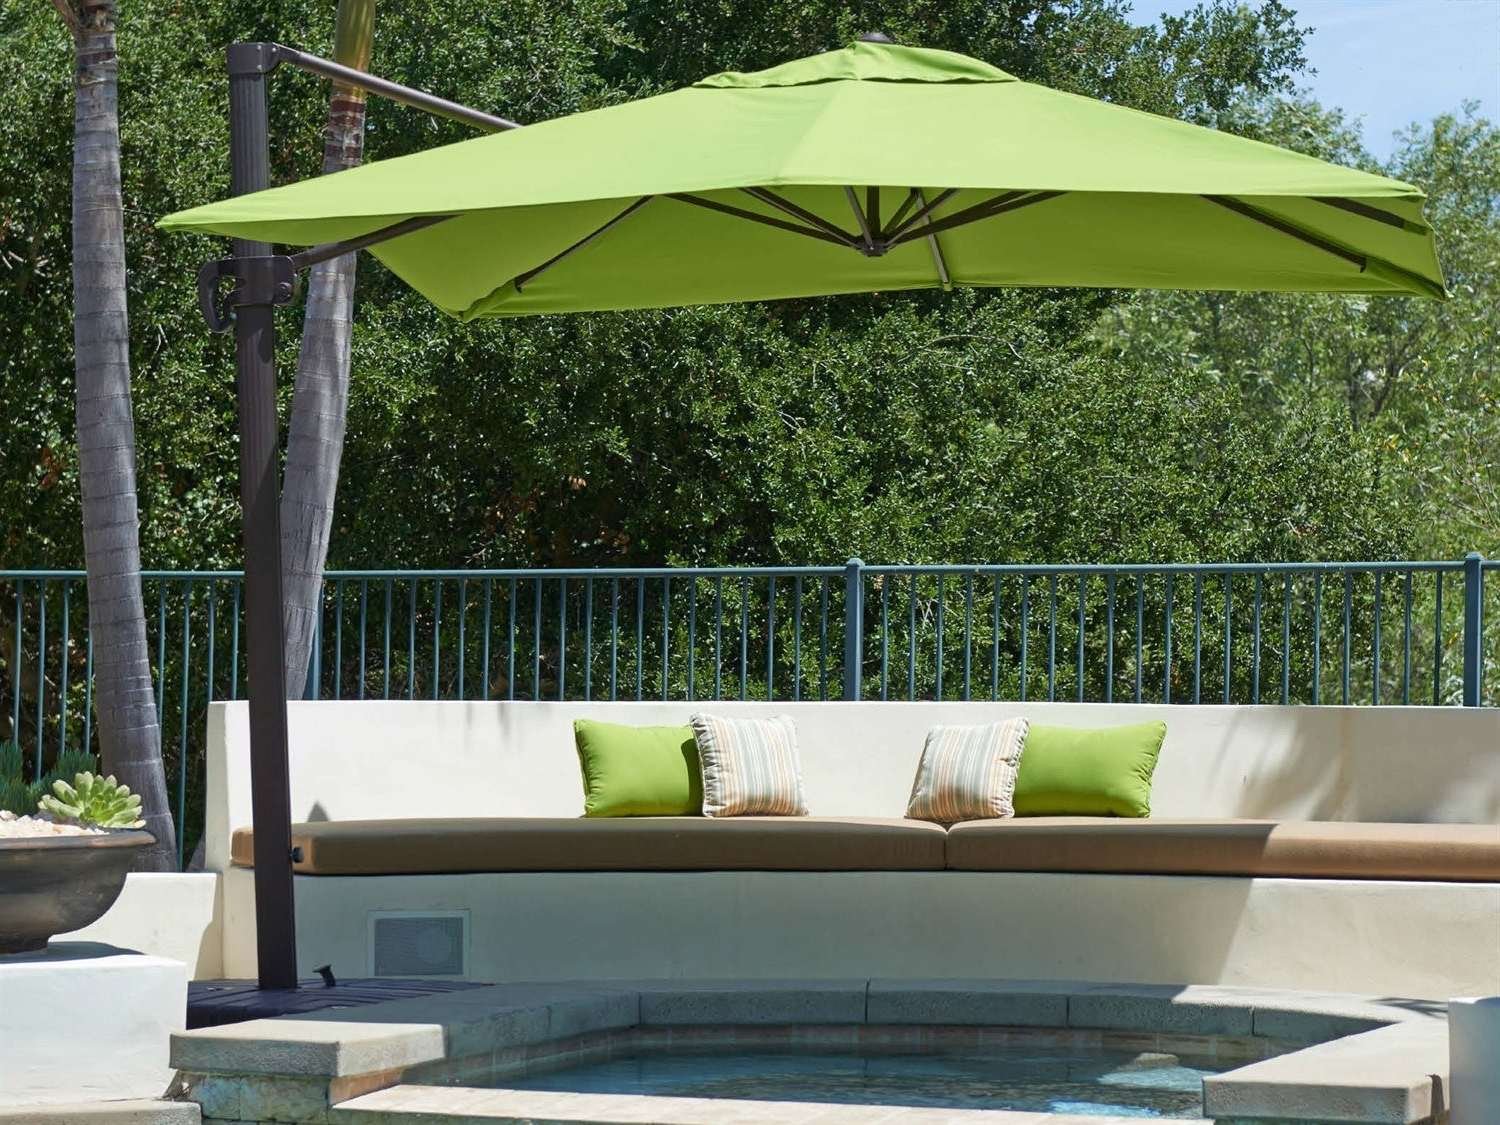 Target Patio Umbrella – Home Design Ideas With Preferred Target Patio Umbrellas (View 6 of 20)